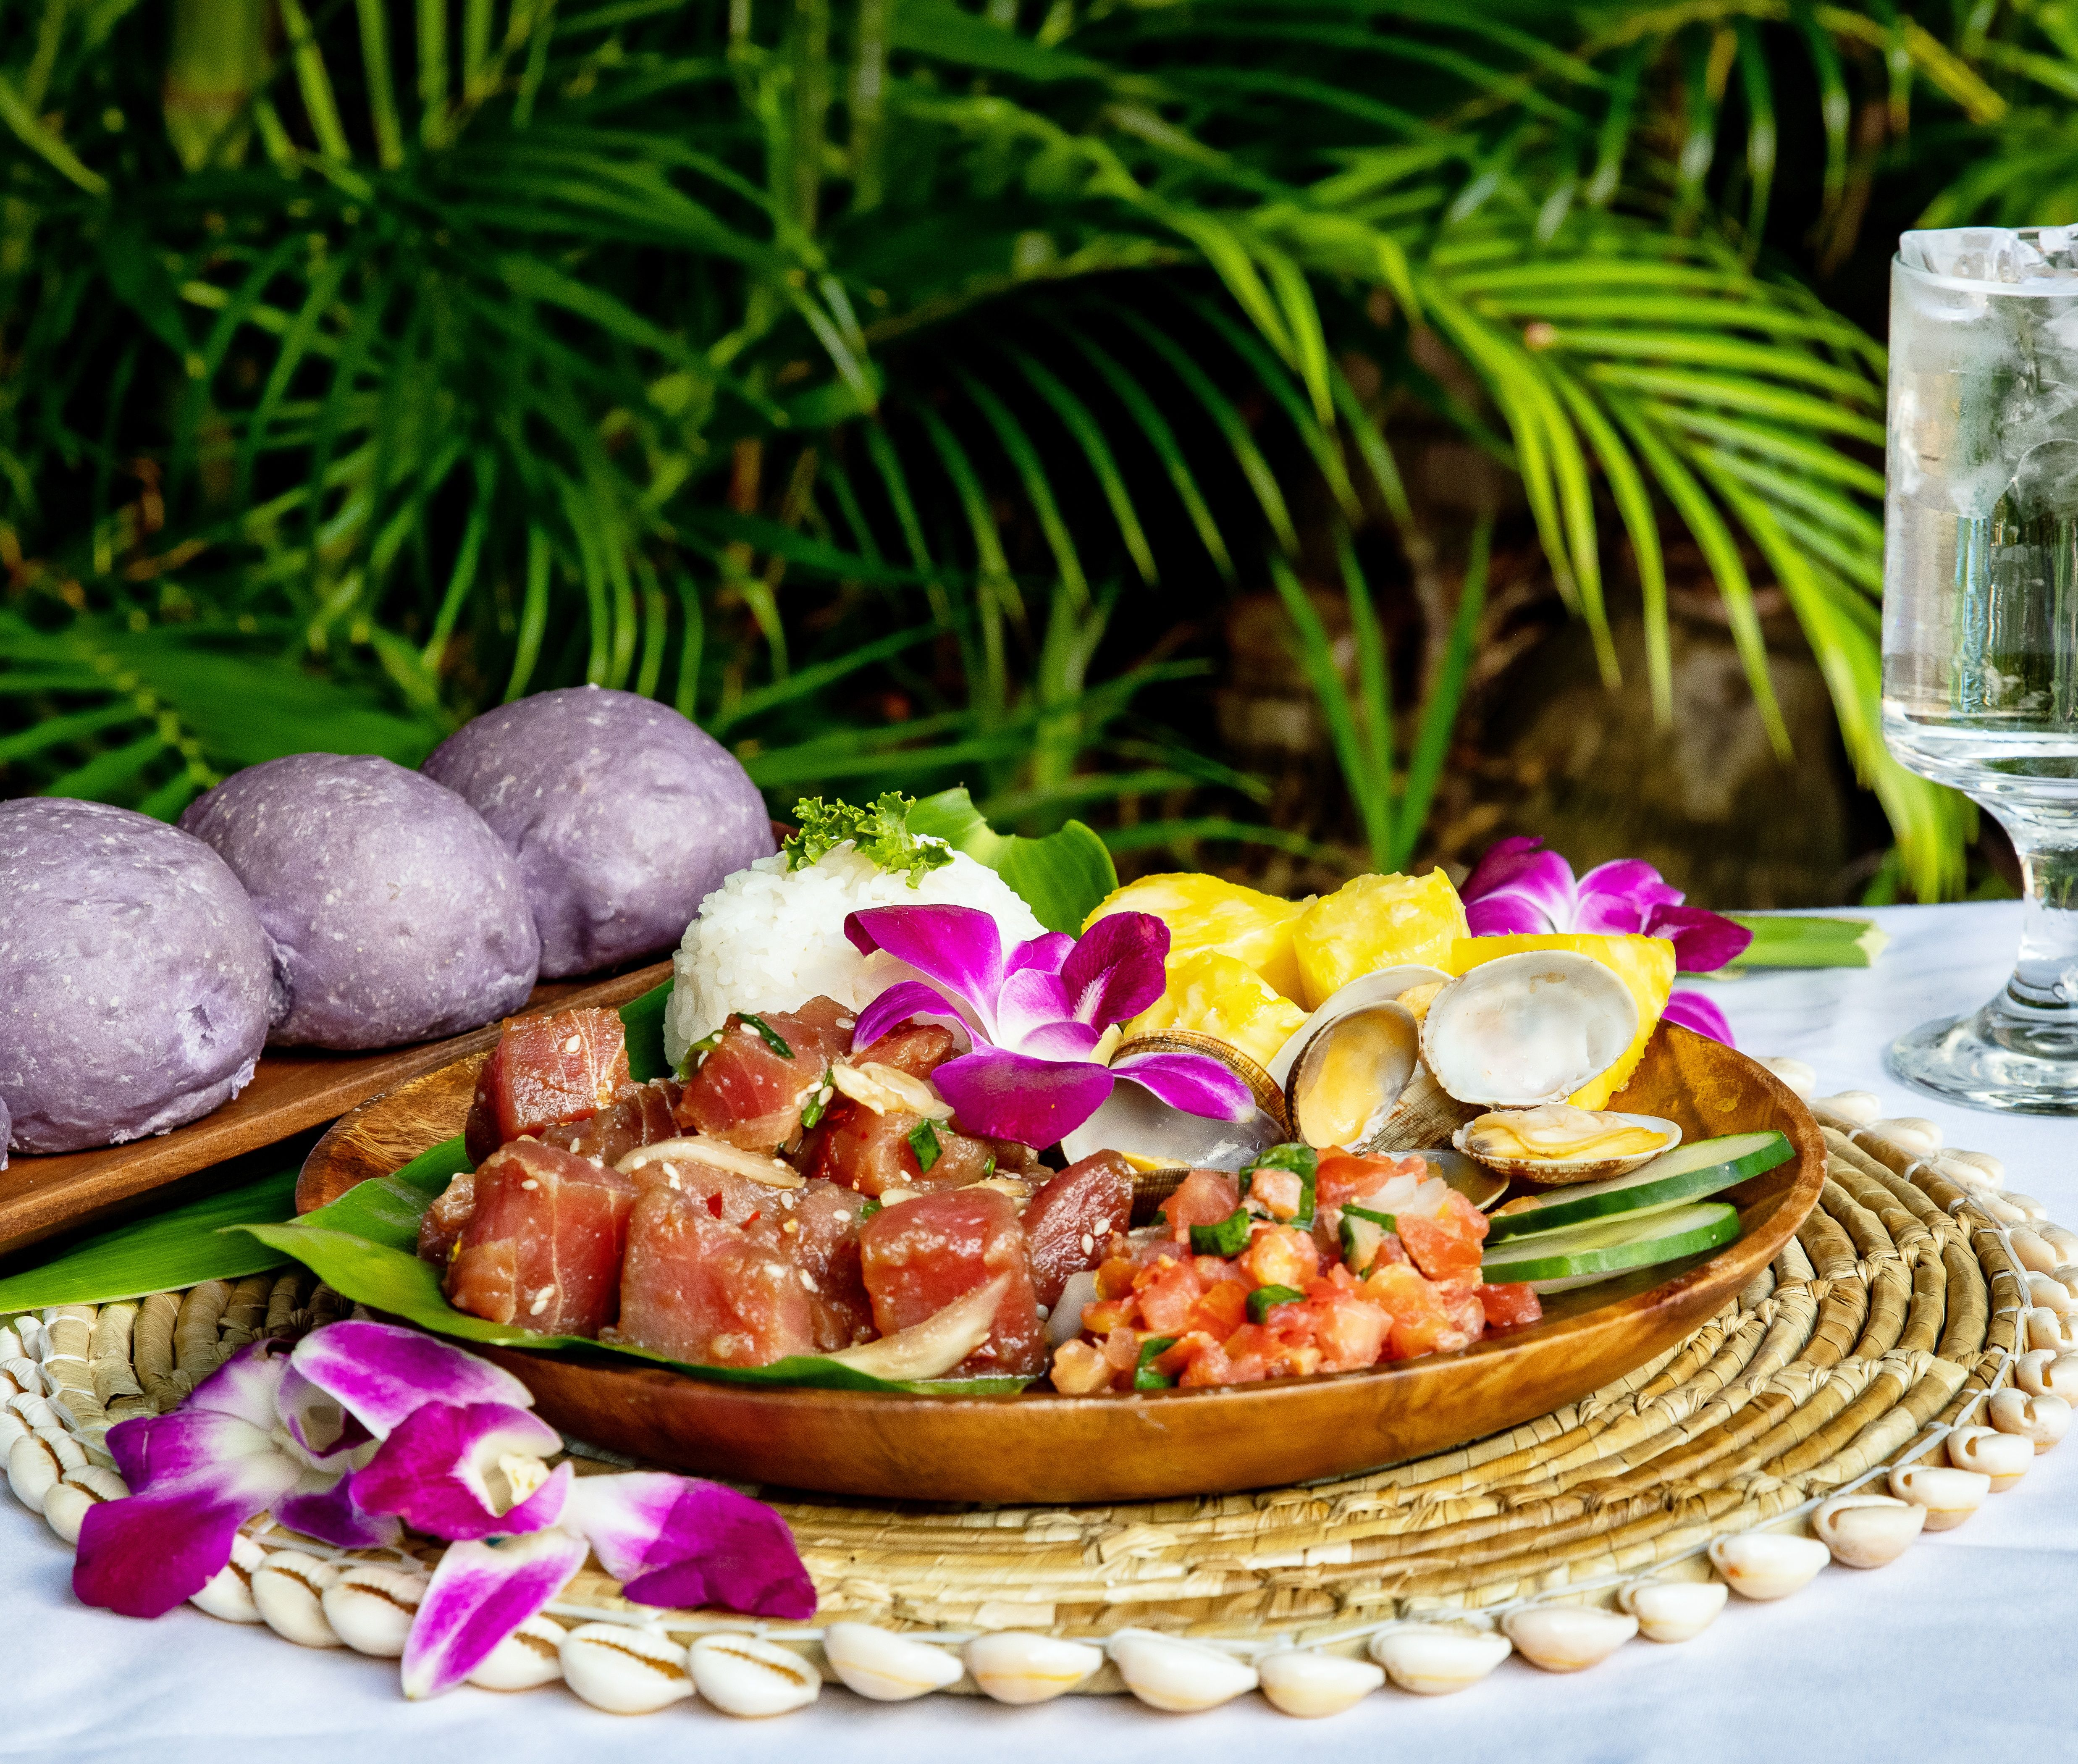 plate of luau food selection from the Alii Luau at the Polynesian Cultural Center